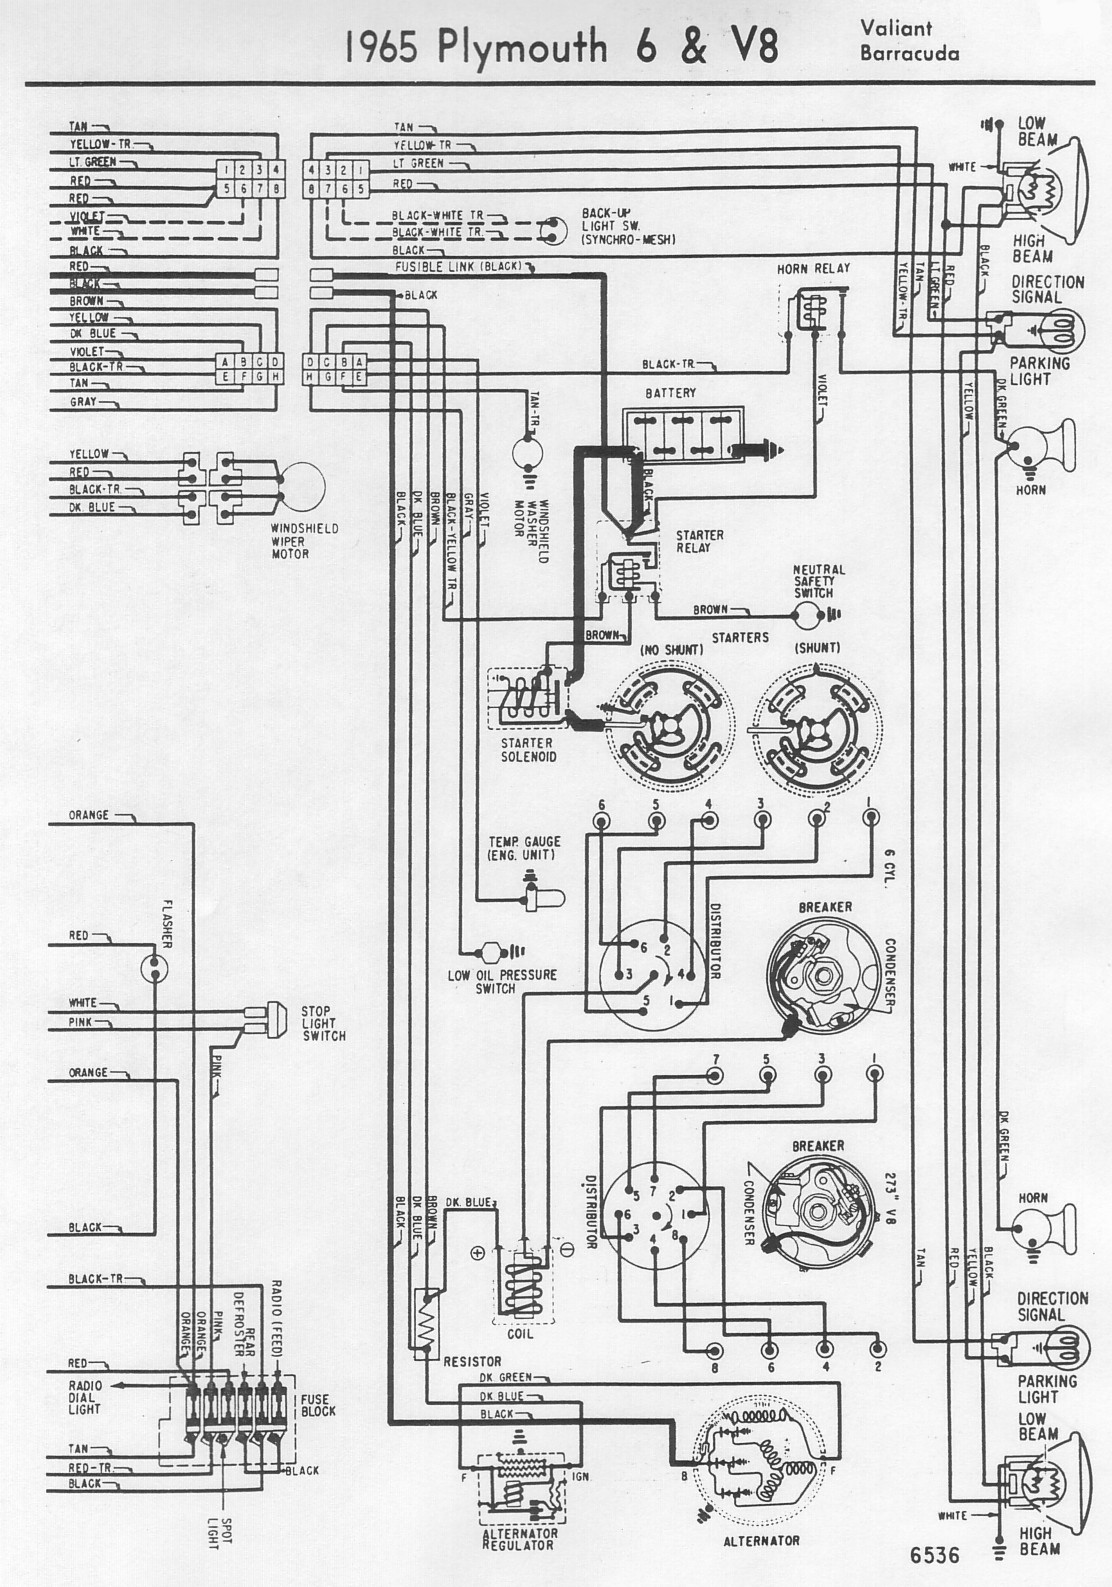 1970 Plymouth Duster Wiring - Wiring Diagram Database on amc gtx, orange gtx, mopar gtx, go wing 1971 gtx, mazda gtx, saleen gtx, custom gtx, 1969 pontiac gtx, craigslist 1971 gtx, roadrunner gtx,